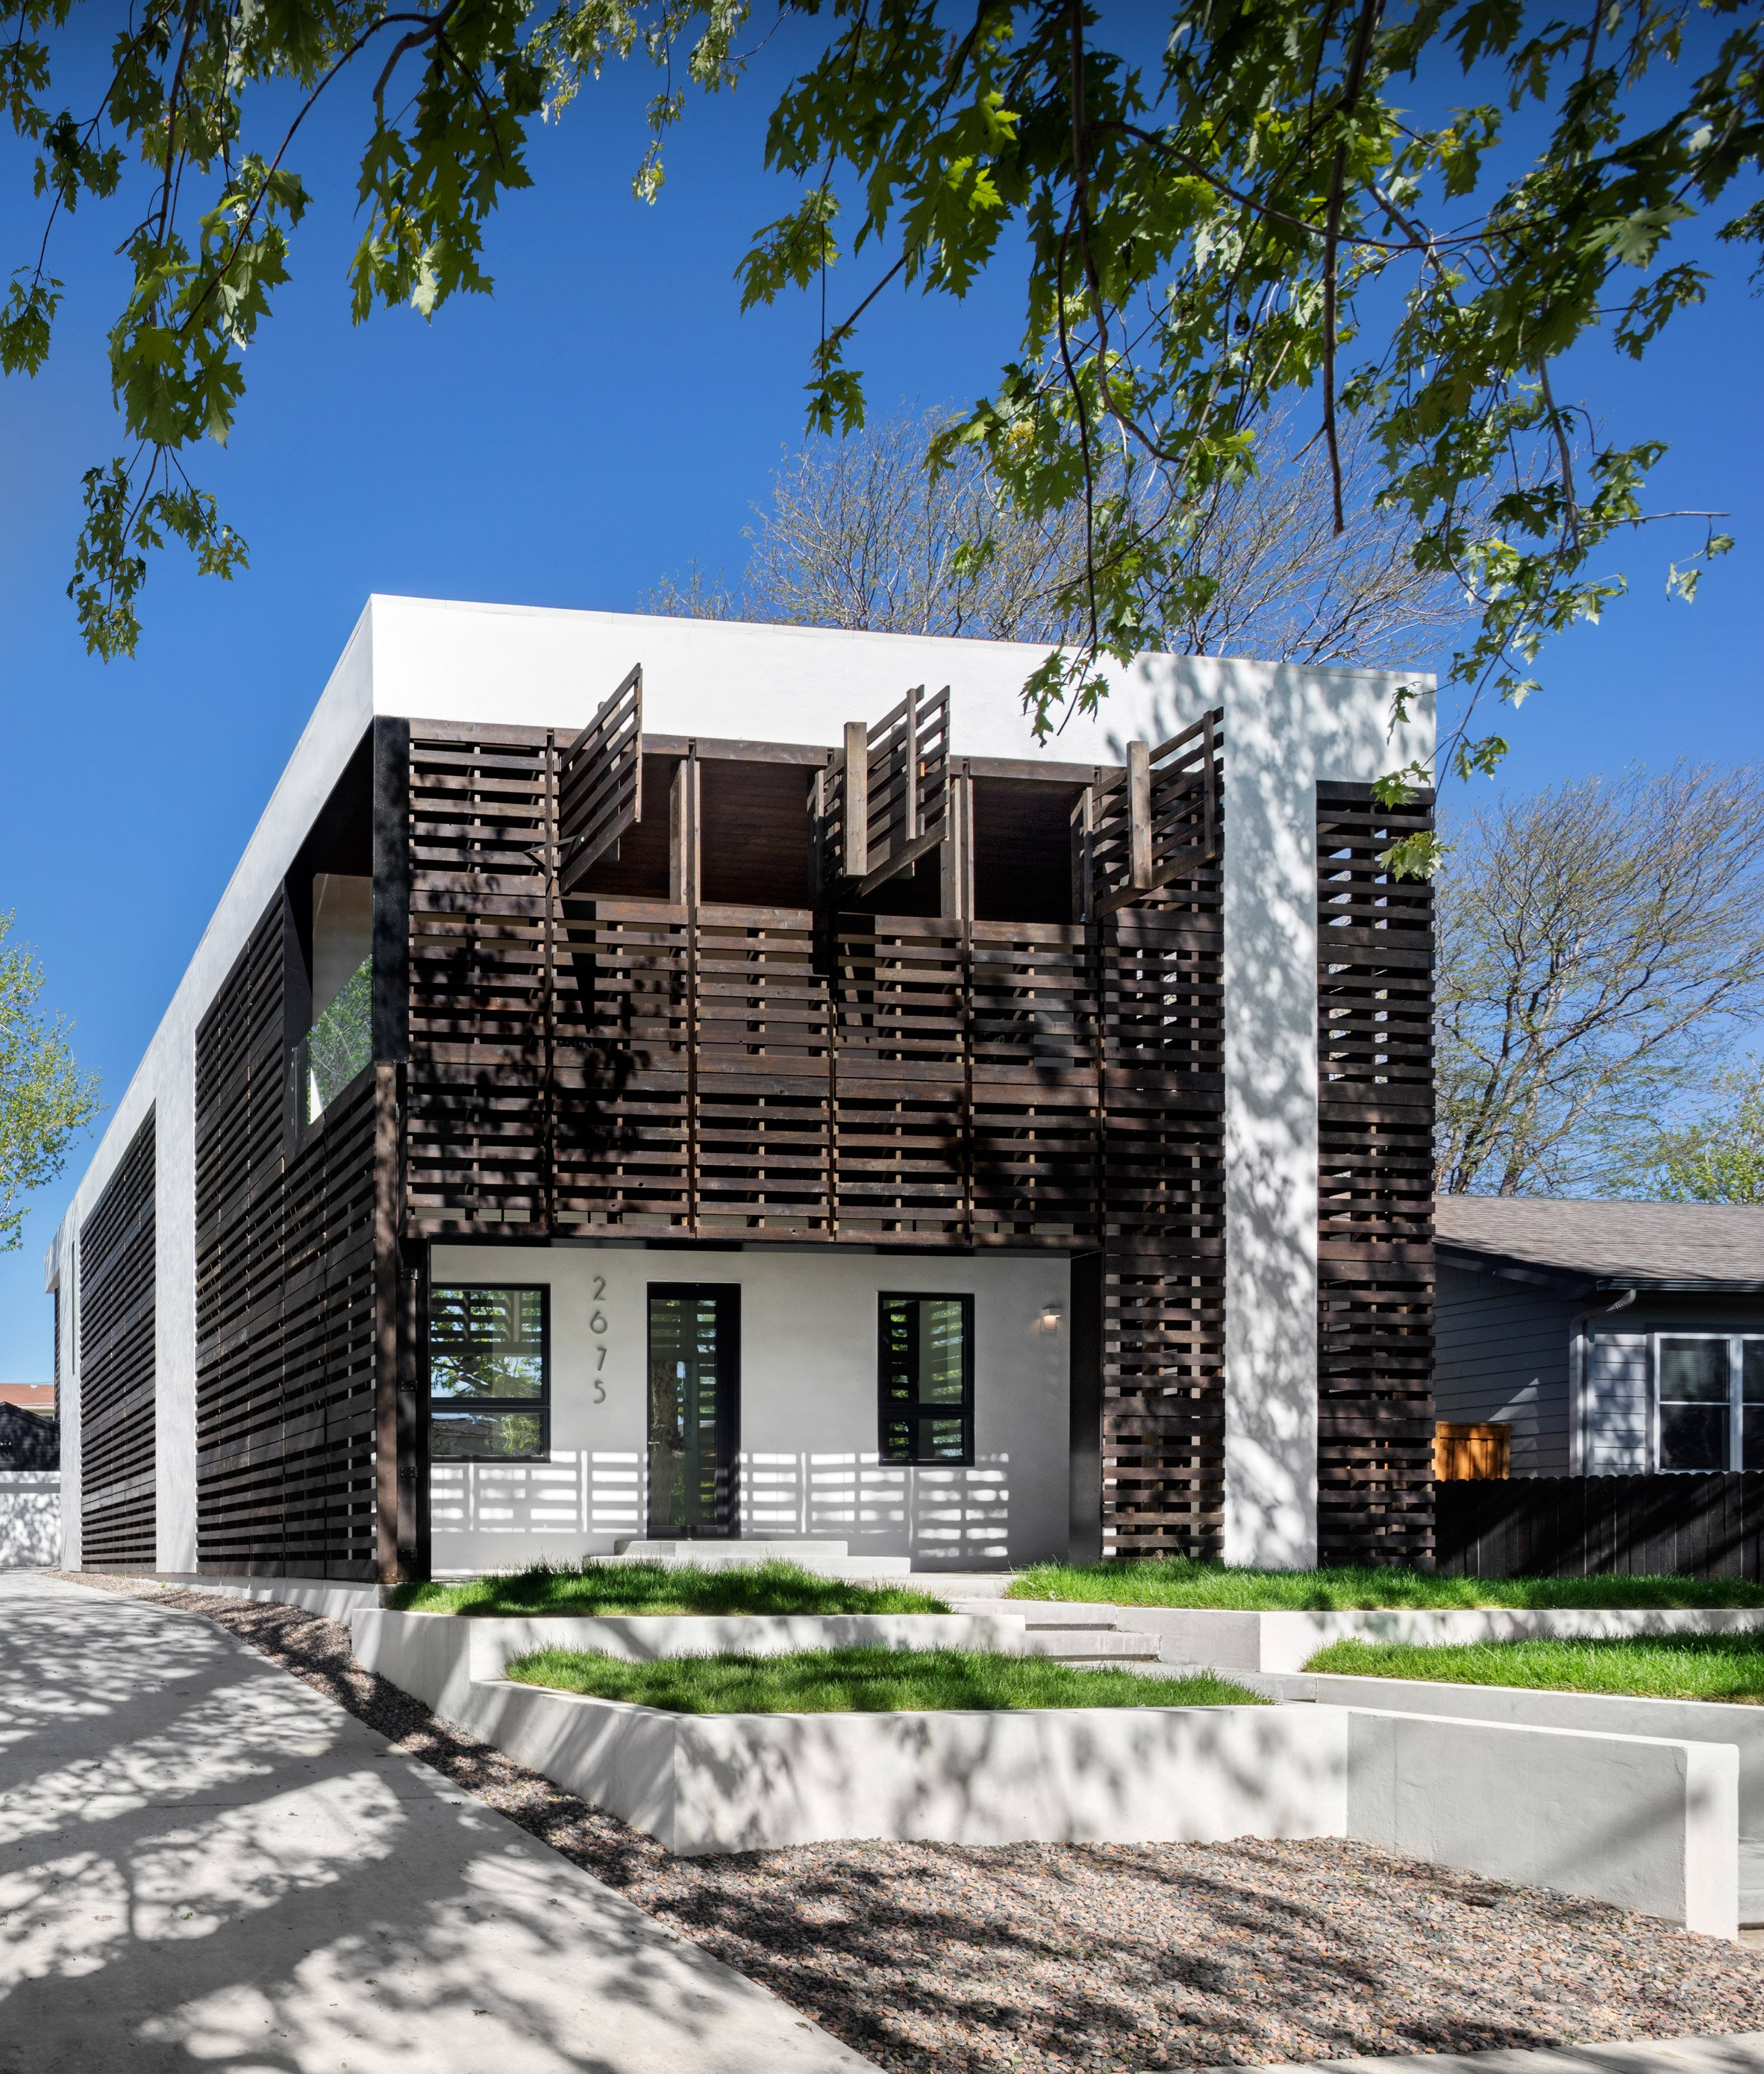 Meridian 105's Denver house features screens and shutters made of black wooden pallets